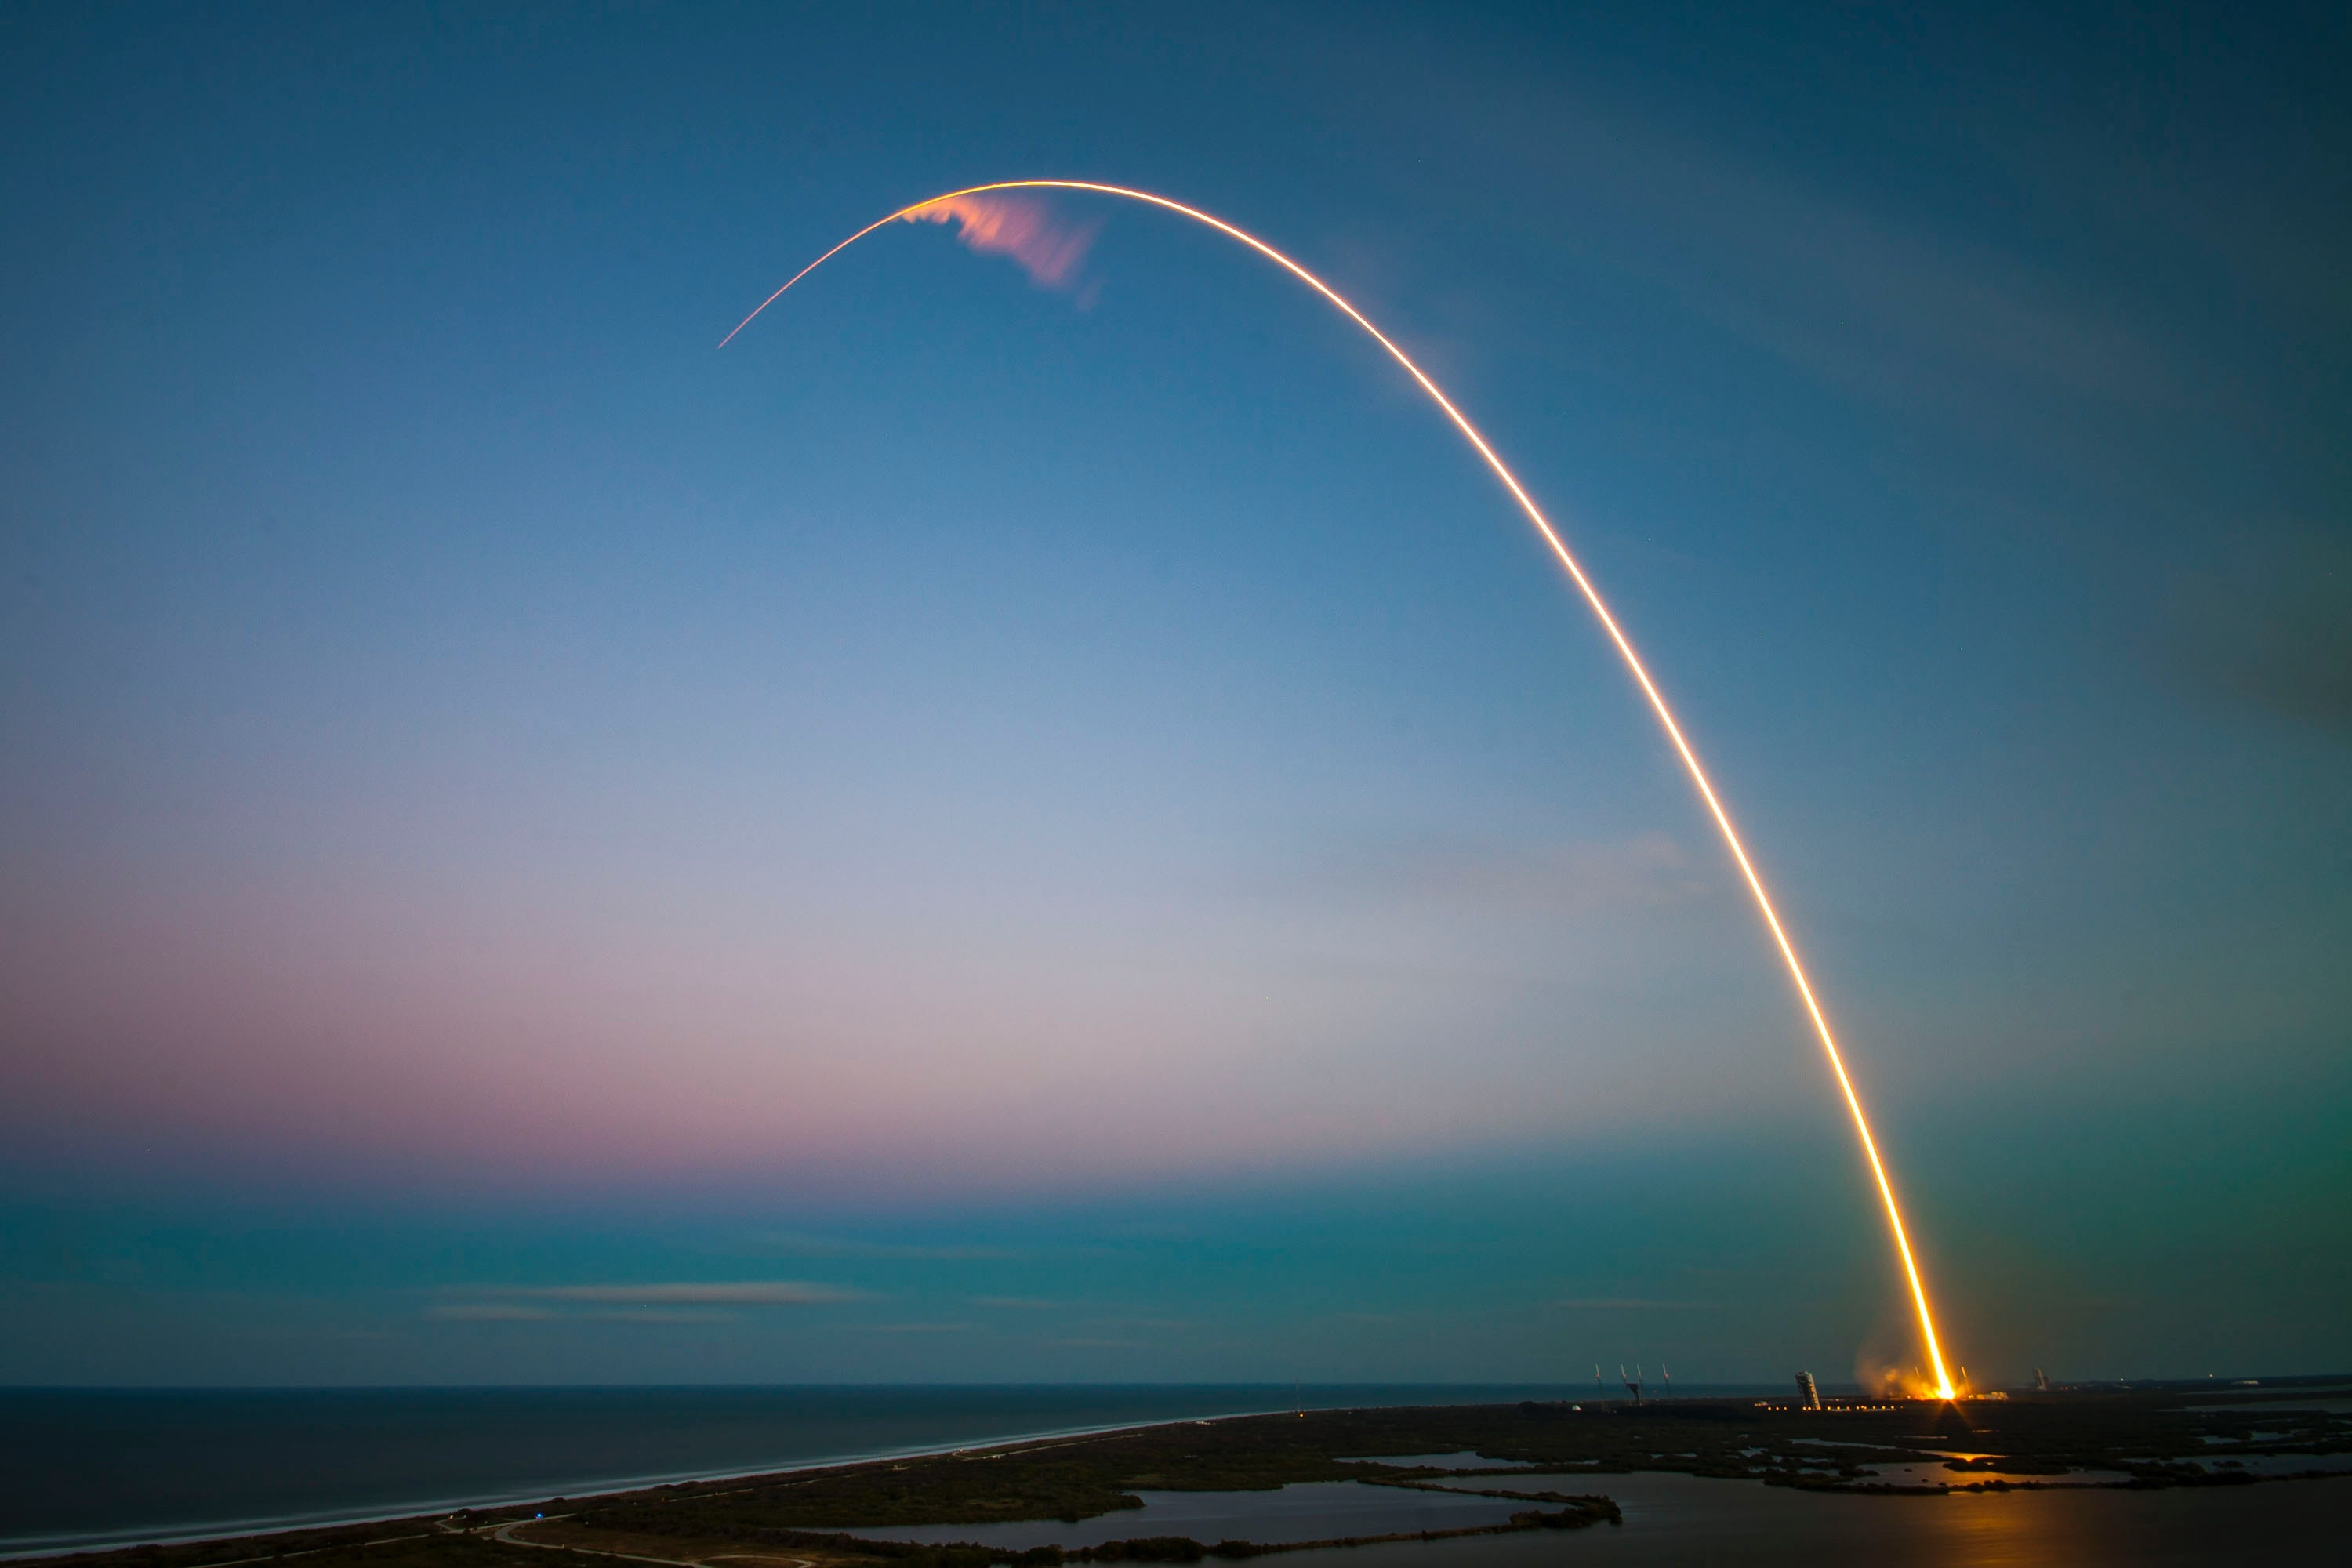 spacex-71873-unsplash_01